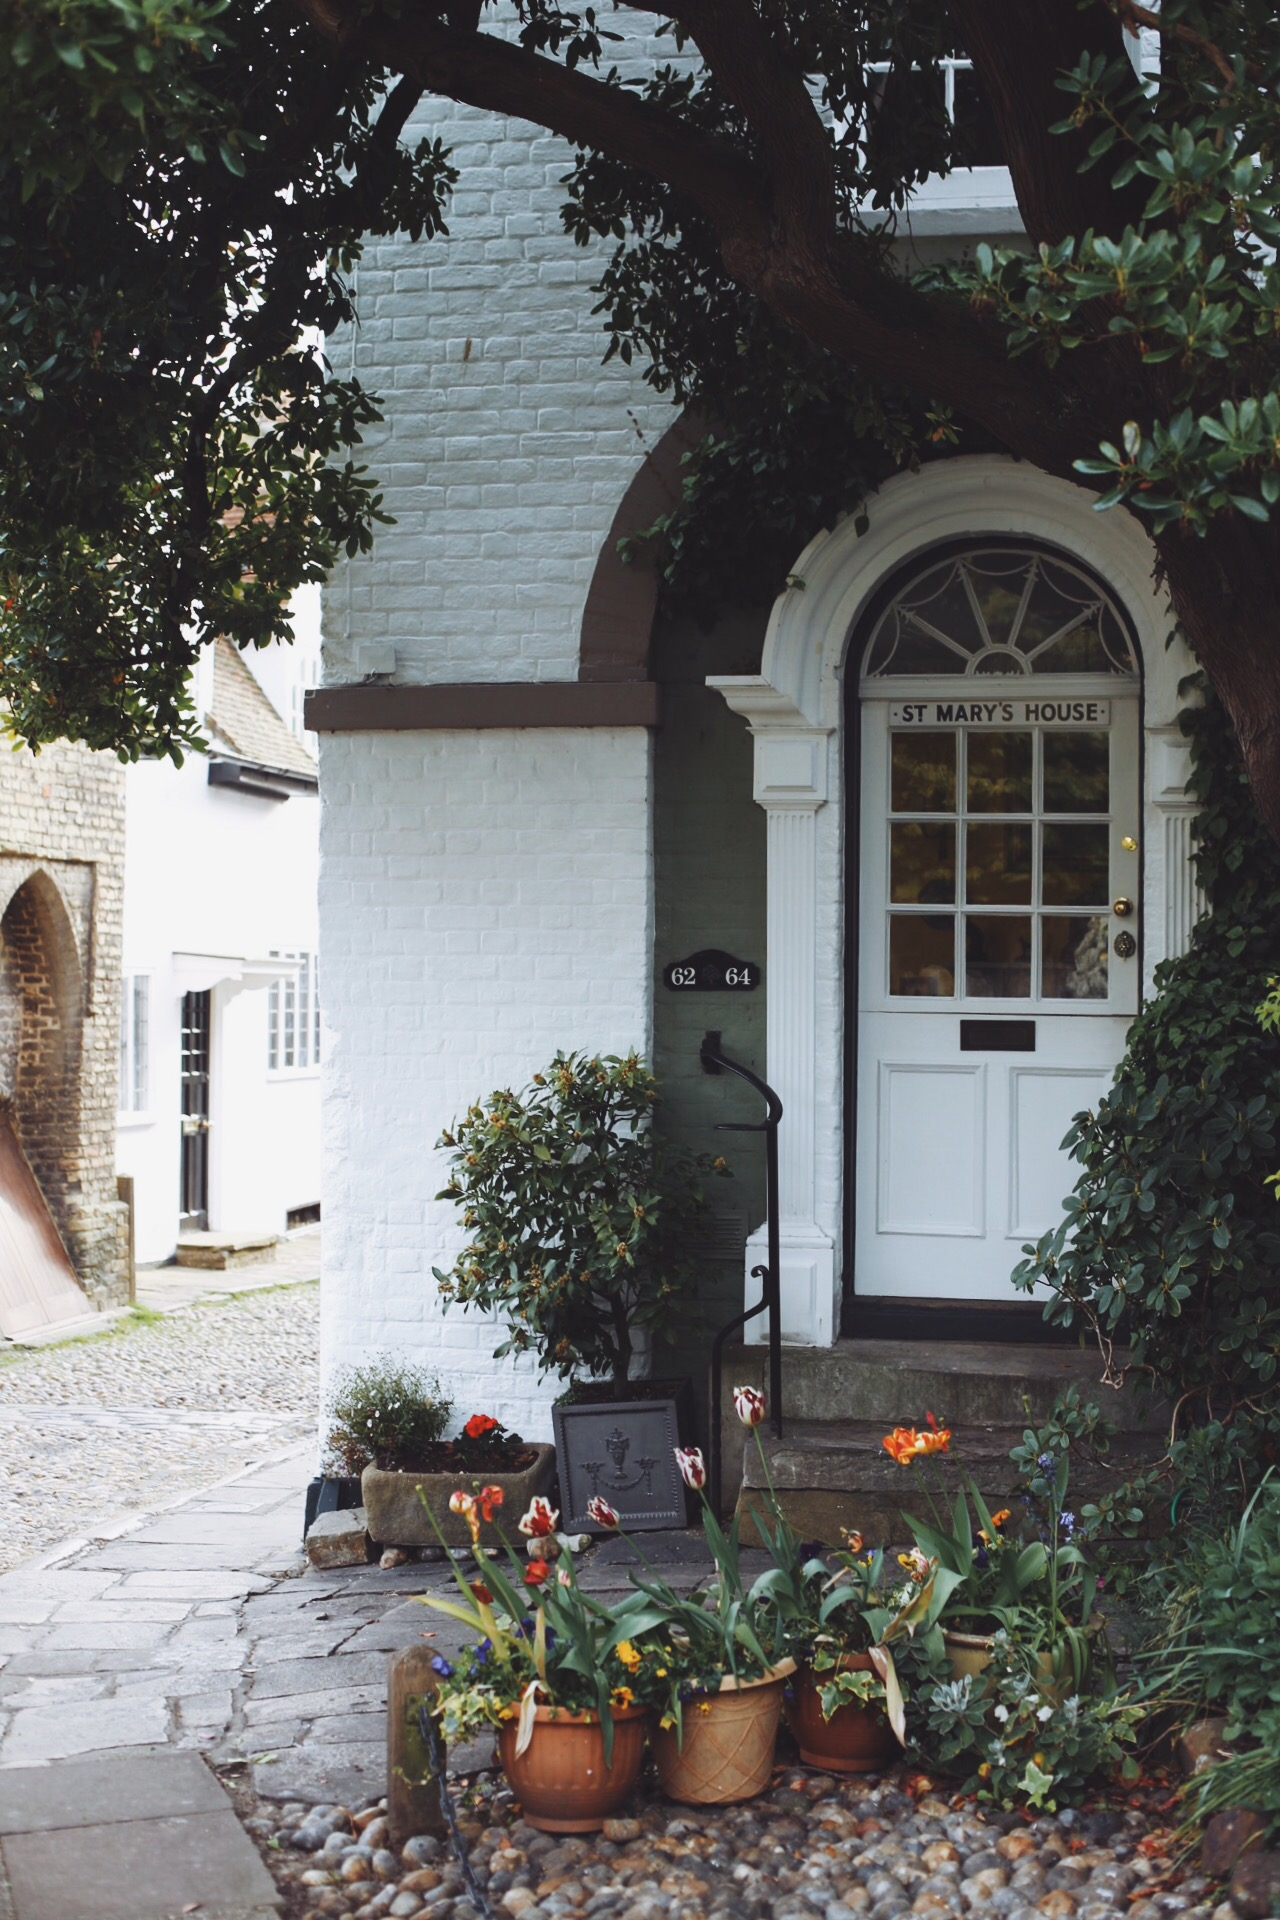 Rye Beautiful Places To Visit In Kent Monalogue